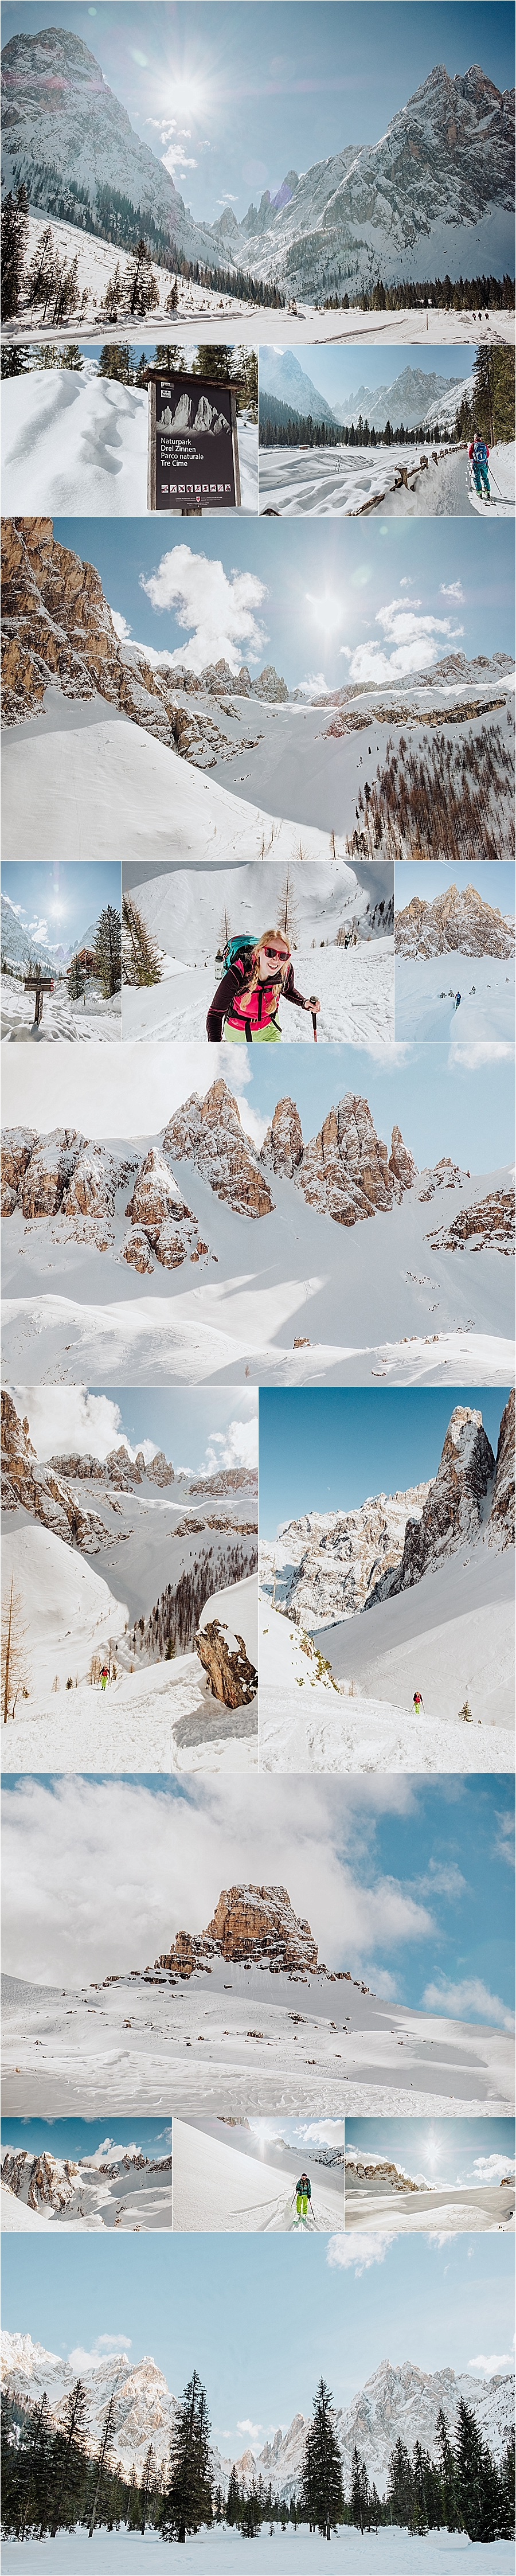 Ski touring in the Naturpark Drei Zinnen in the Dolomites with adventure wedding photographer Wild Connections Photography